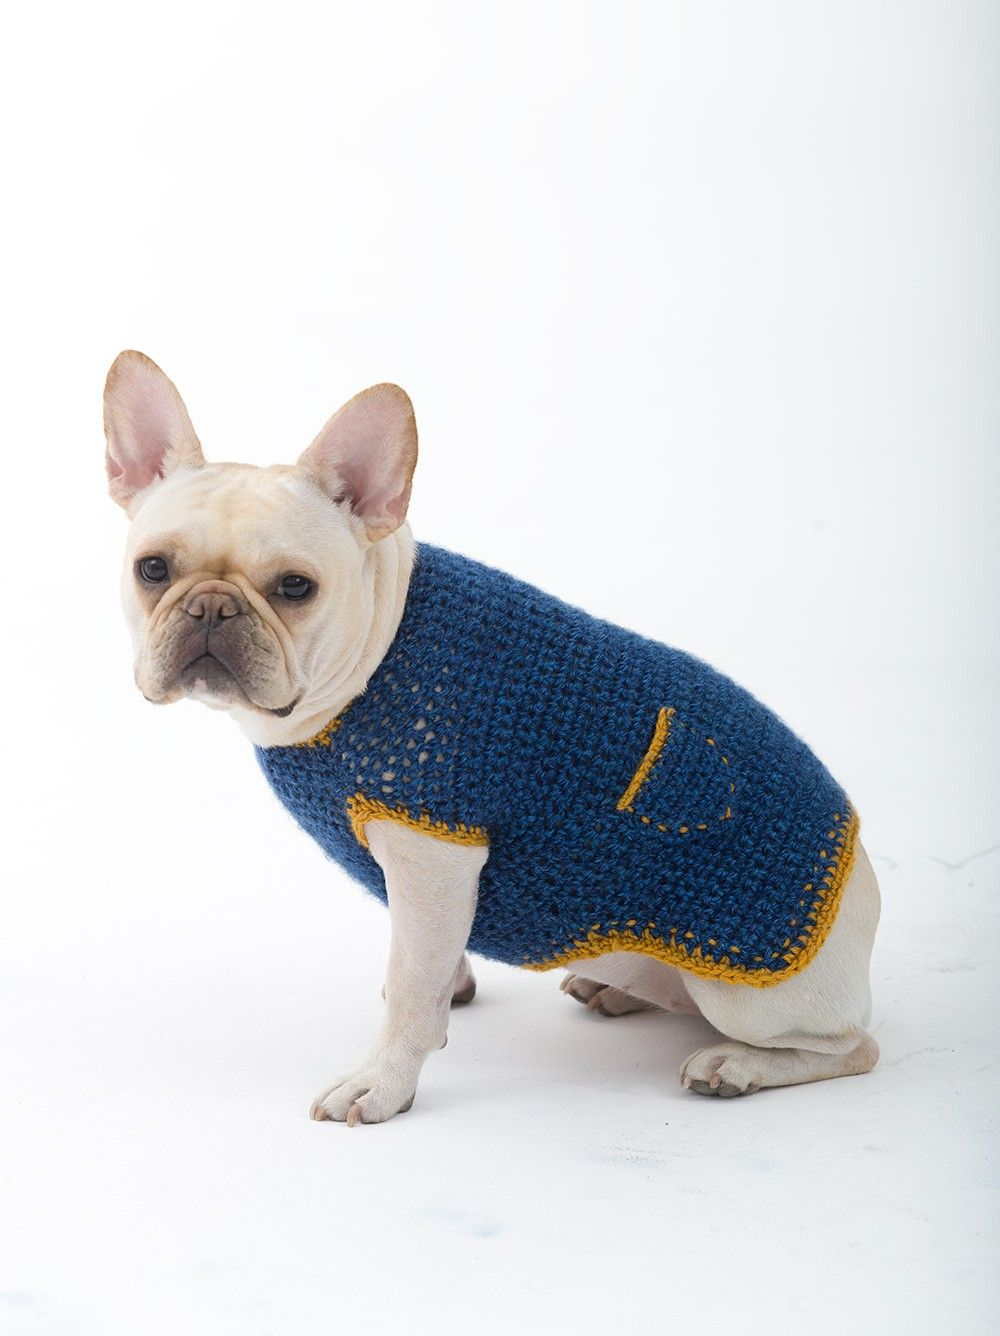 The Casual Friday Dog Sweater Pattern (Crochet) | crochet dog ...